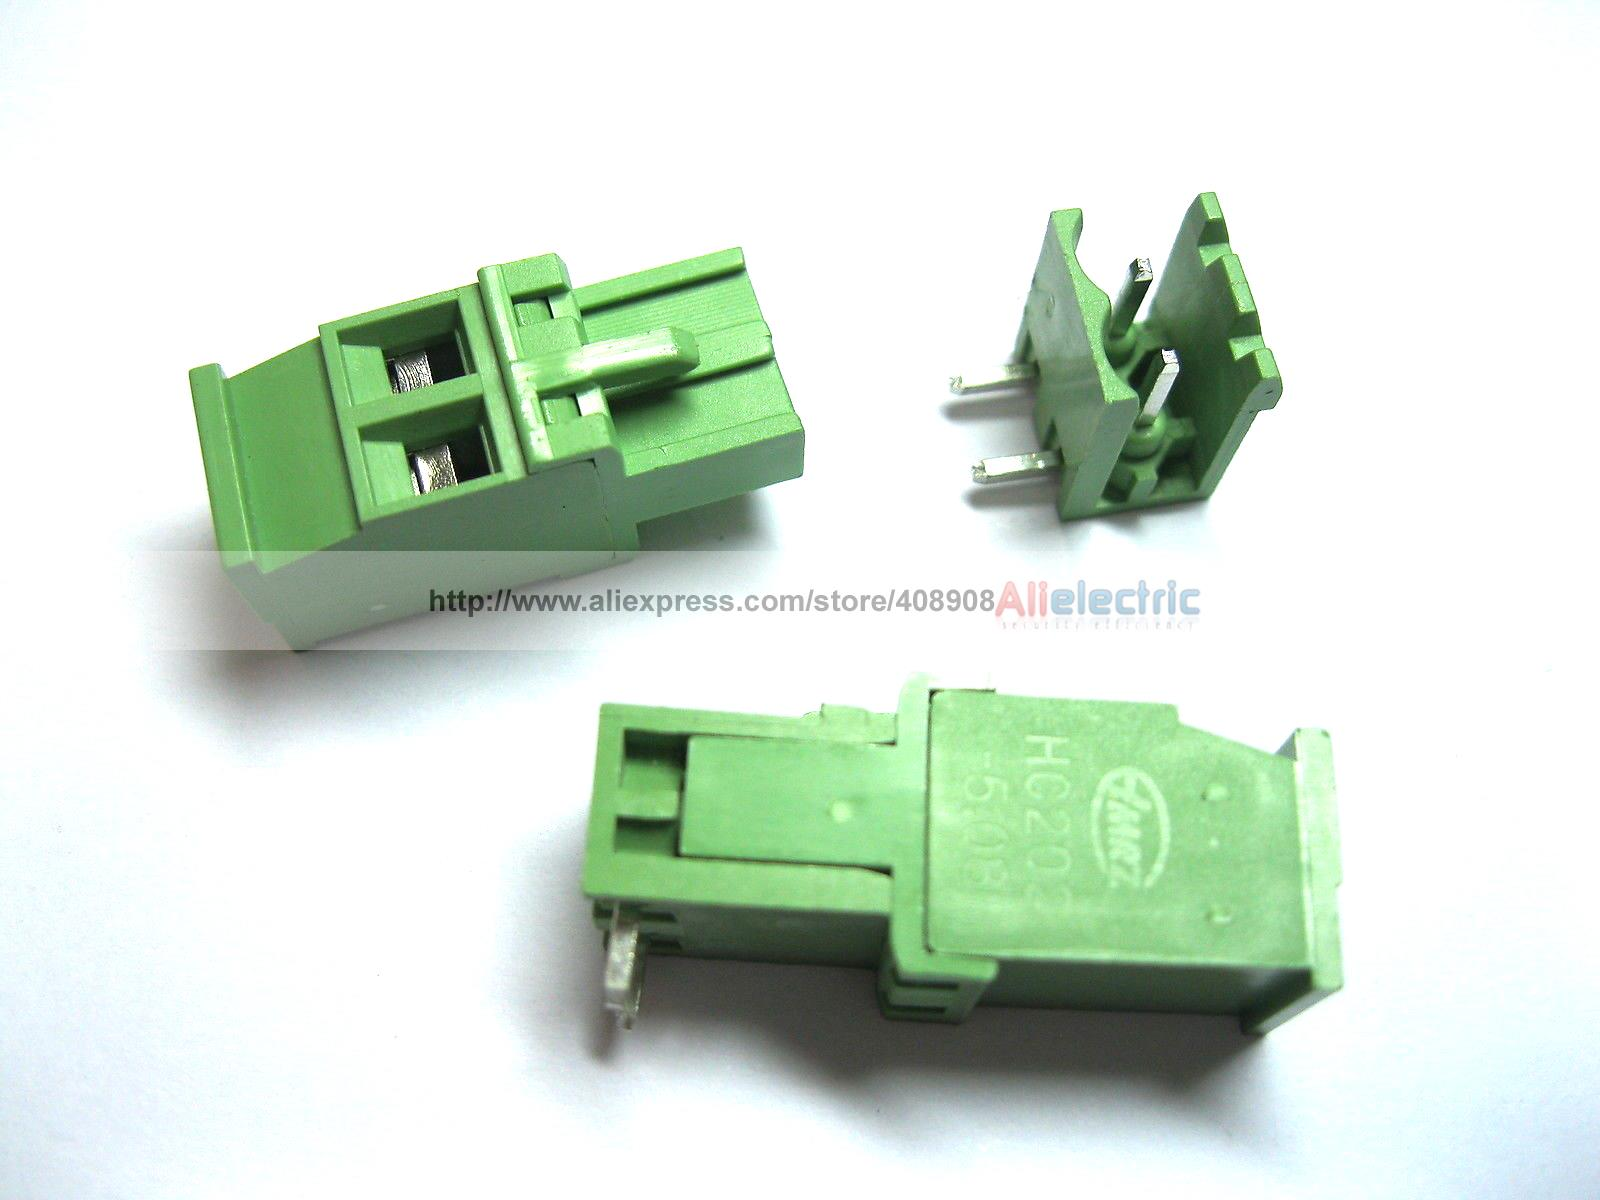 36 Pcs 5.08A 5.08mm Angle 2 Pin Screw Terminal Block Connector Pluggable Type 30 pcs 5 08mm angle 16 pin screw terminal block connector pluggable type green